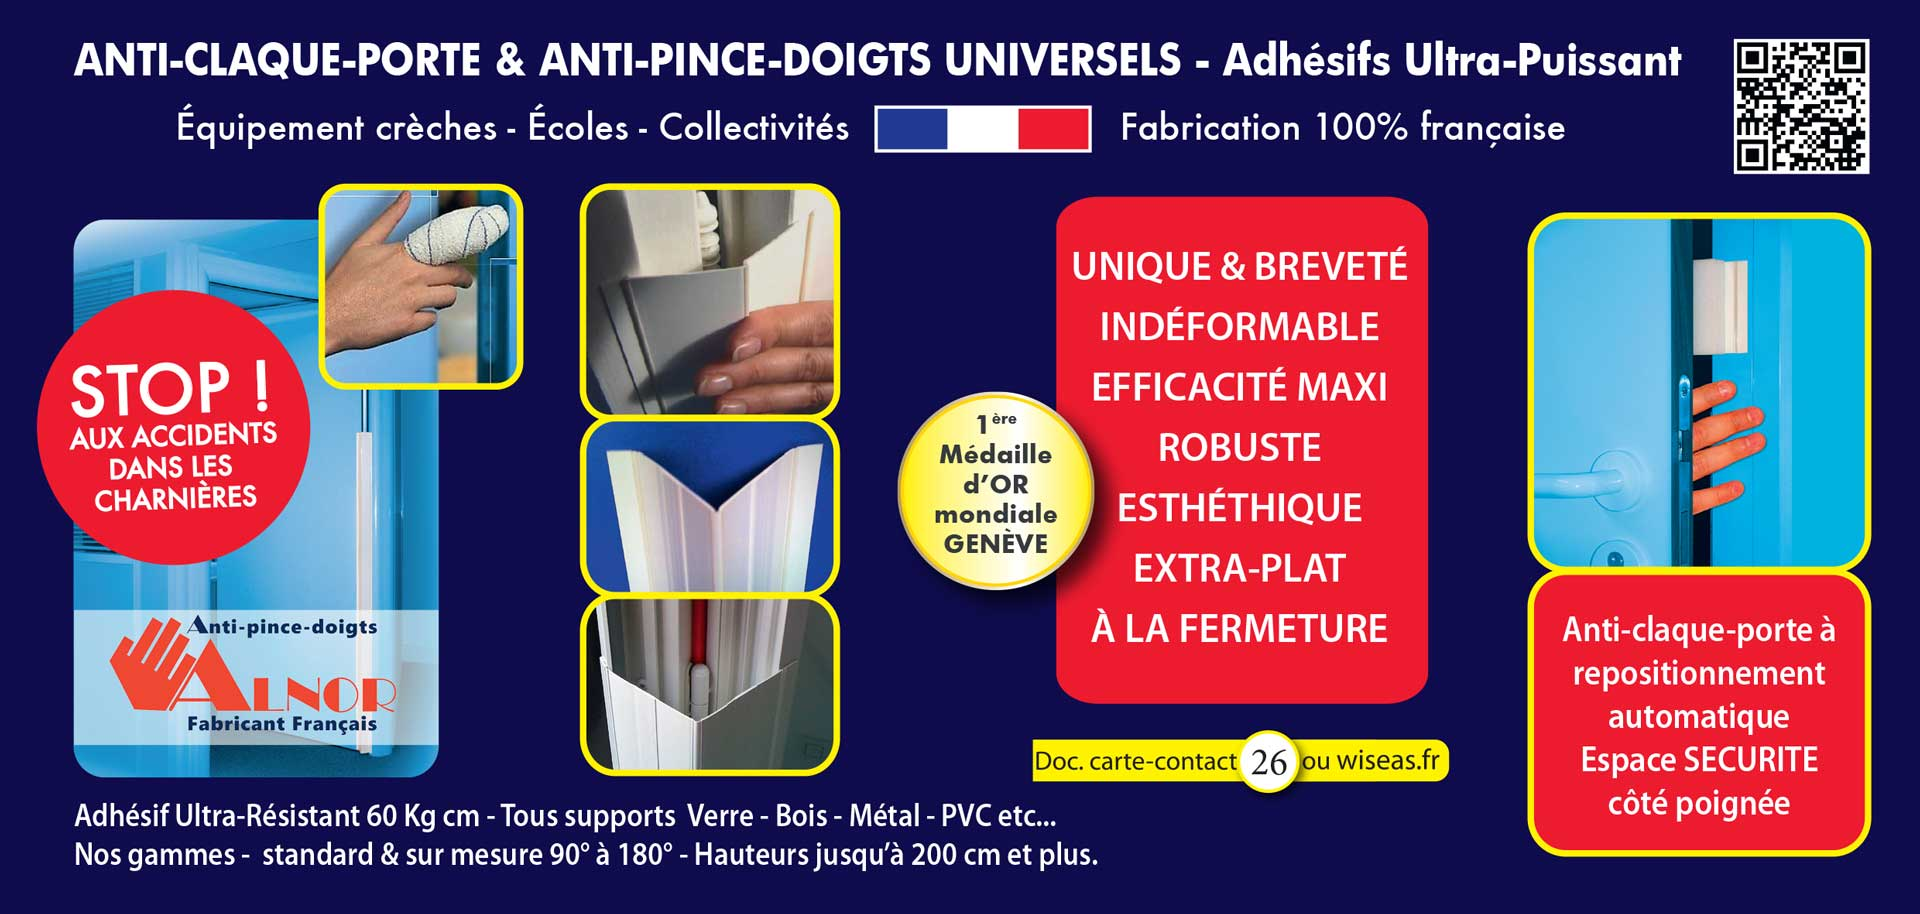 Anti-claque porte - anti pince doigts universels